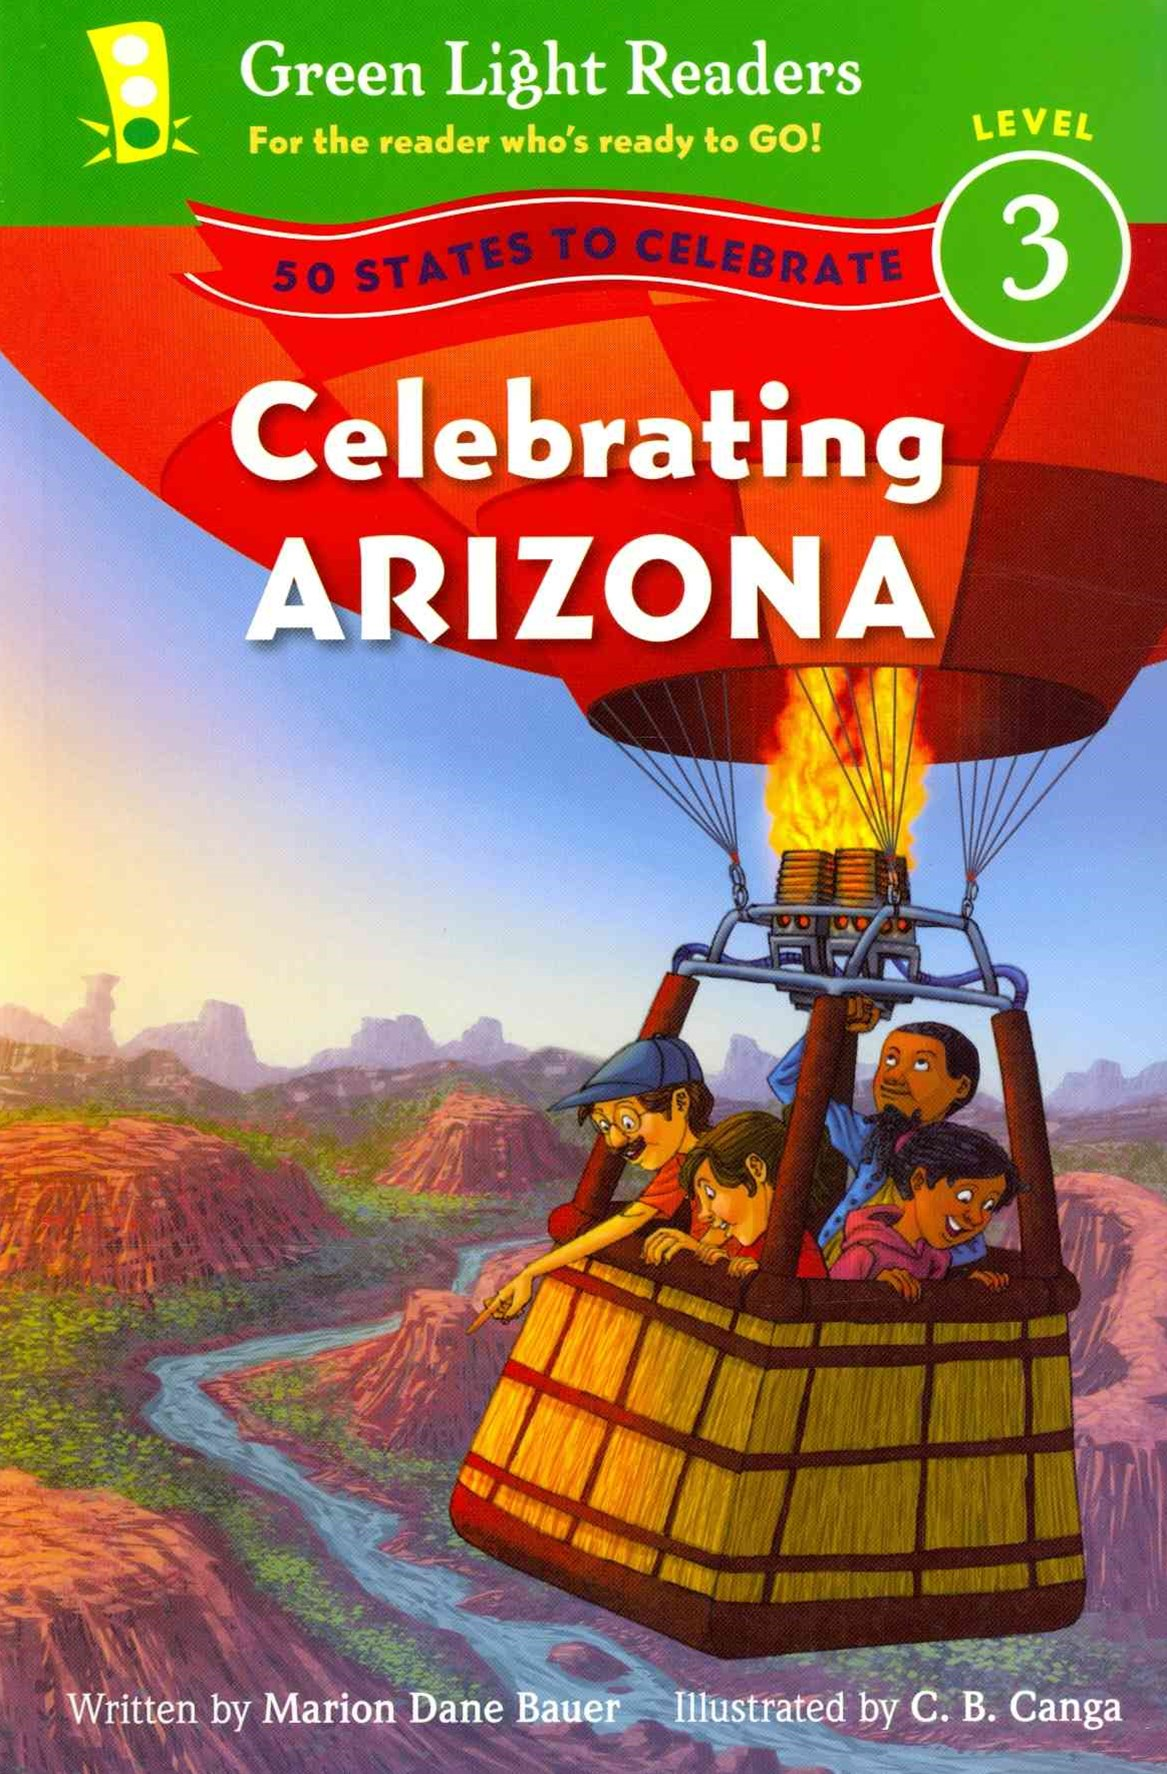 Celebrating Arizona: 50 States to Celebrate: Level 3 Reader